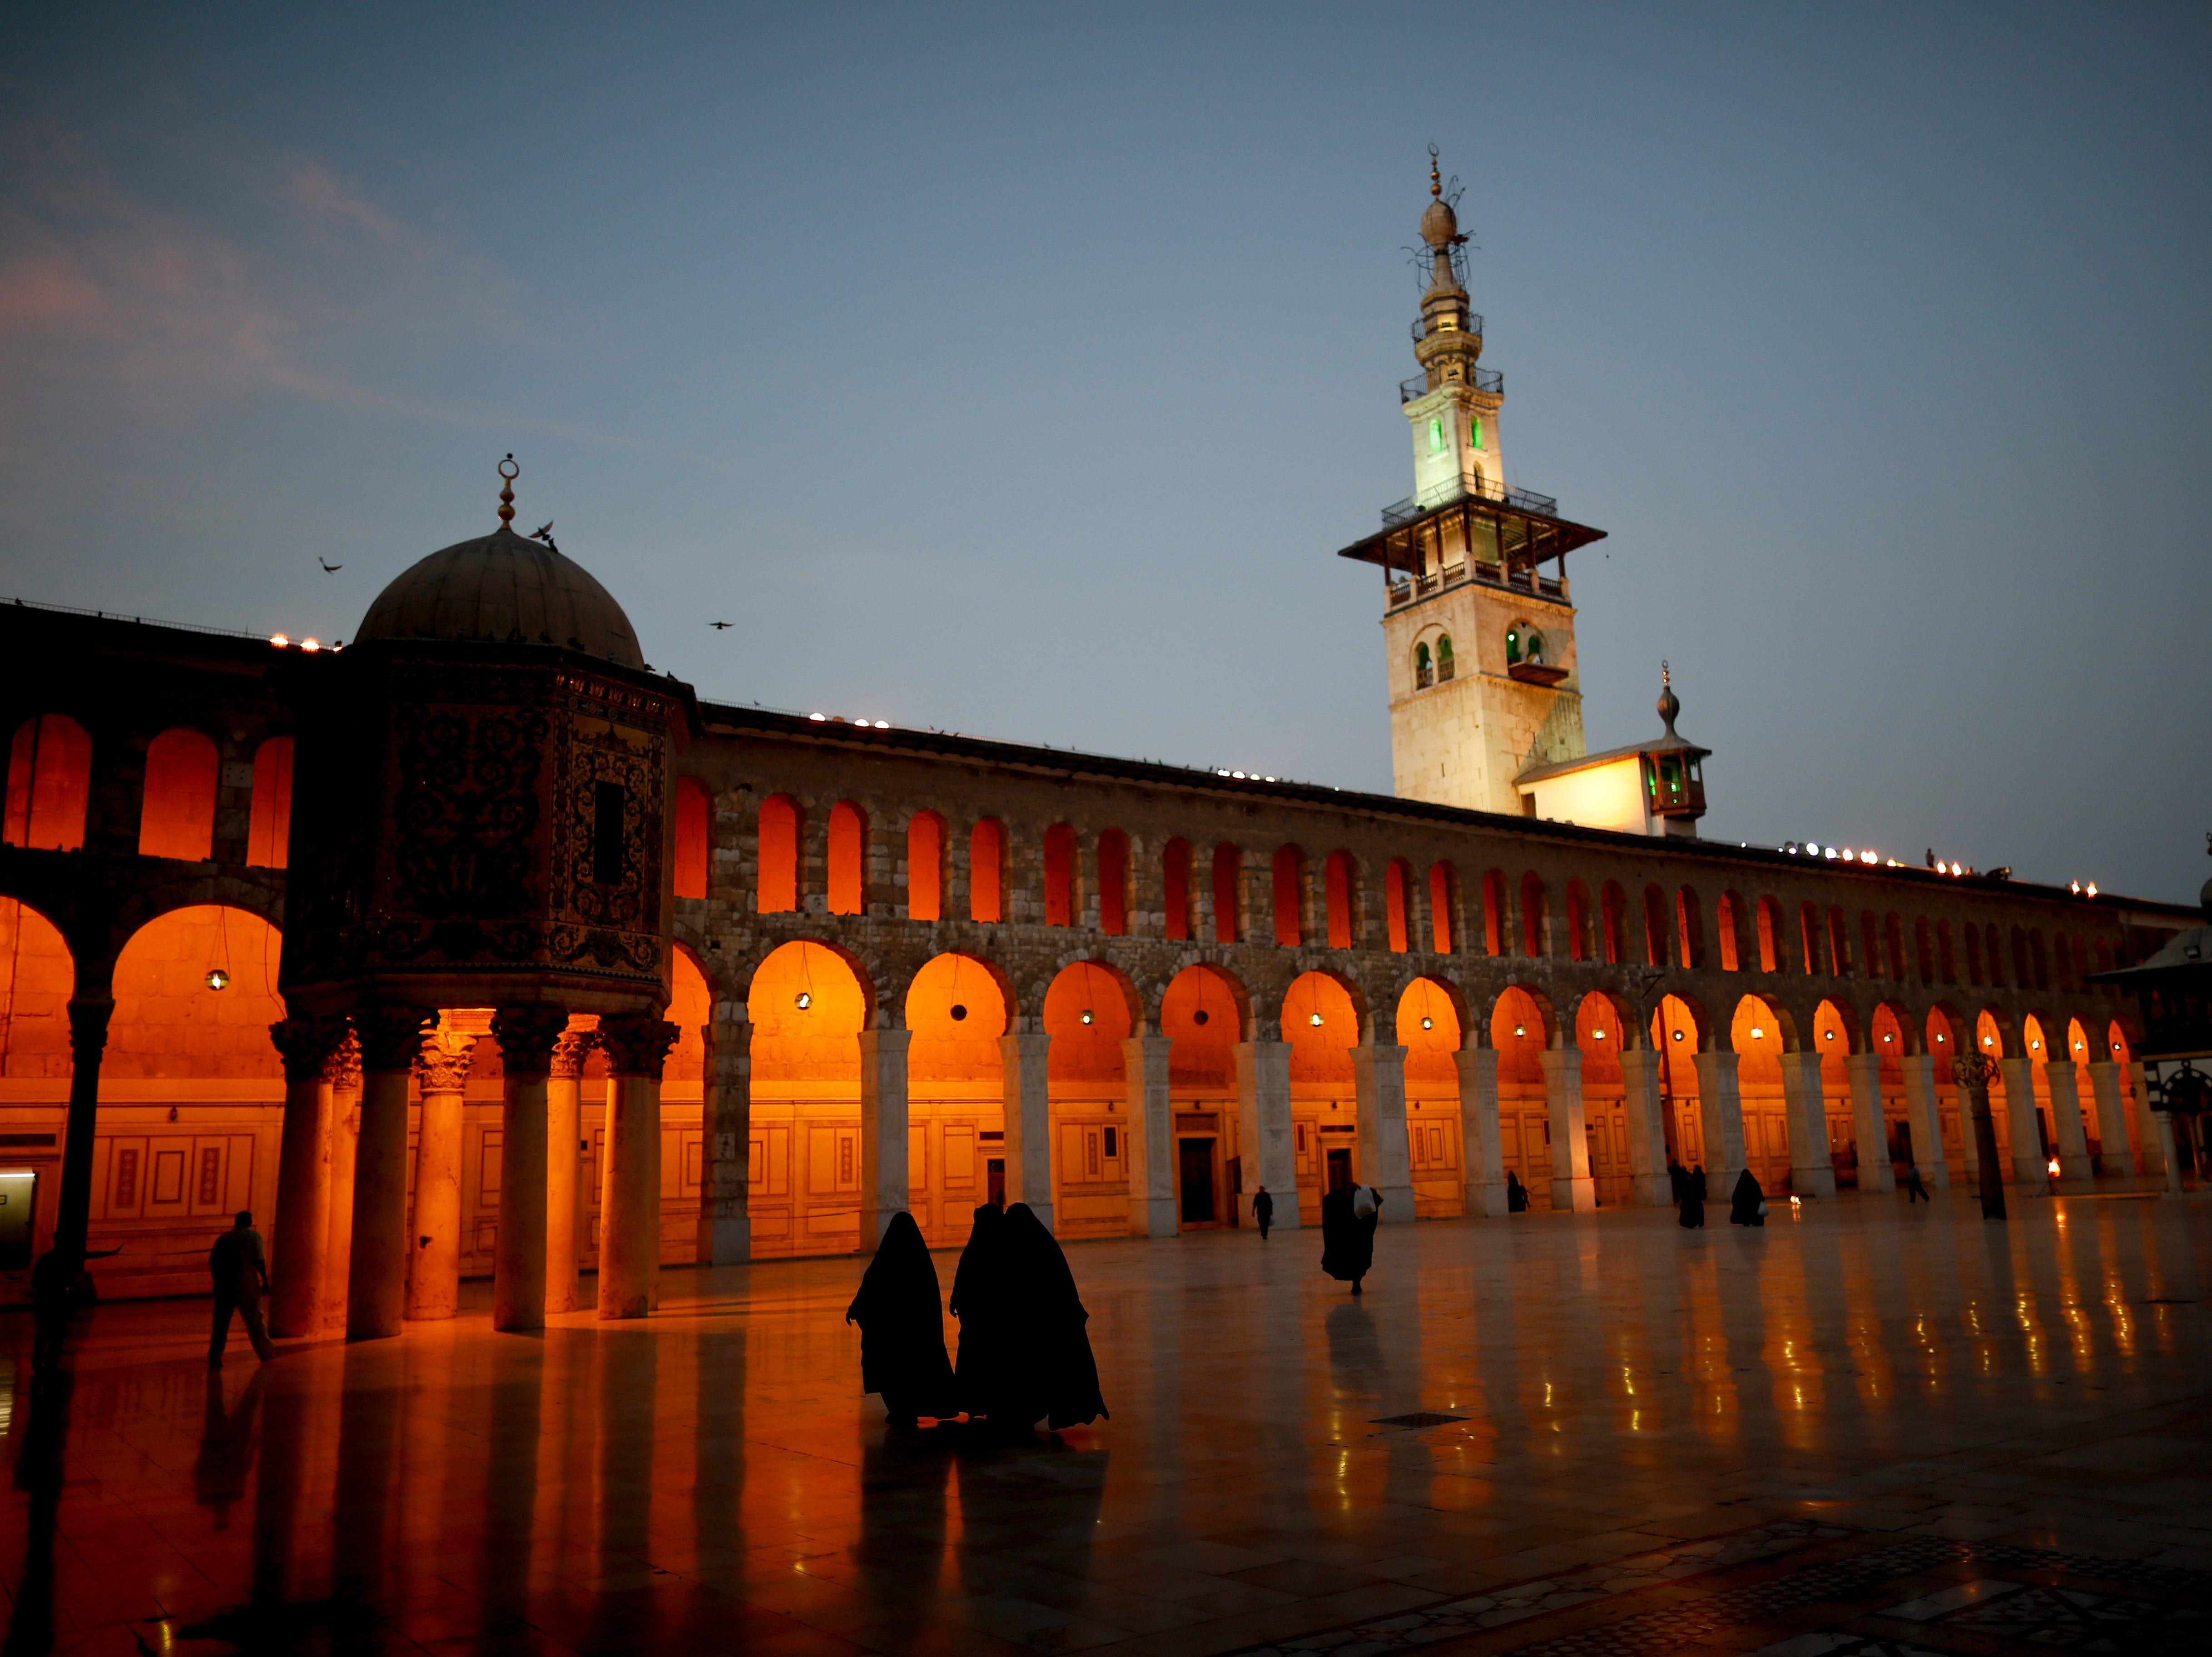 """Muslim women walk in the courtyard of the 7th century Umayyad Mosque in Damascus, Syria, Wednesday, Oct. 3, 2018. President Bashar Assad told a little-known Kuwaiti newspaper Wednesday that Syria has reached a """"major understanding"""" with Arab states after years of hostility over the country's civil war."""